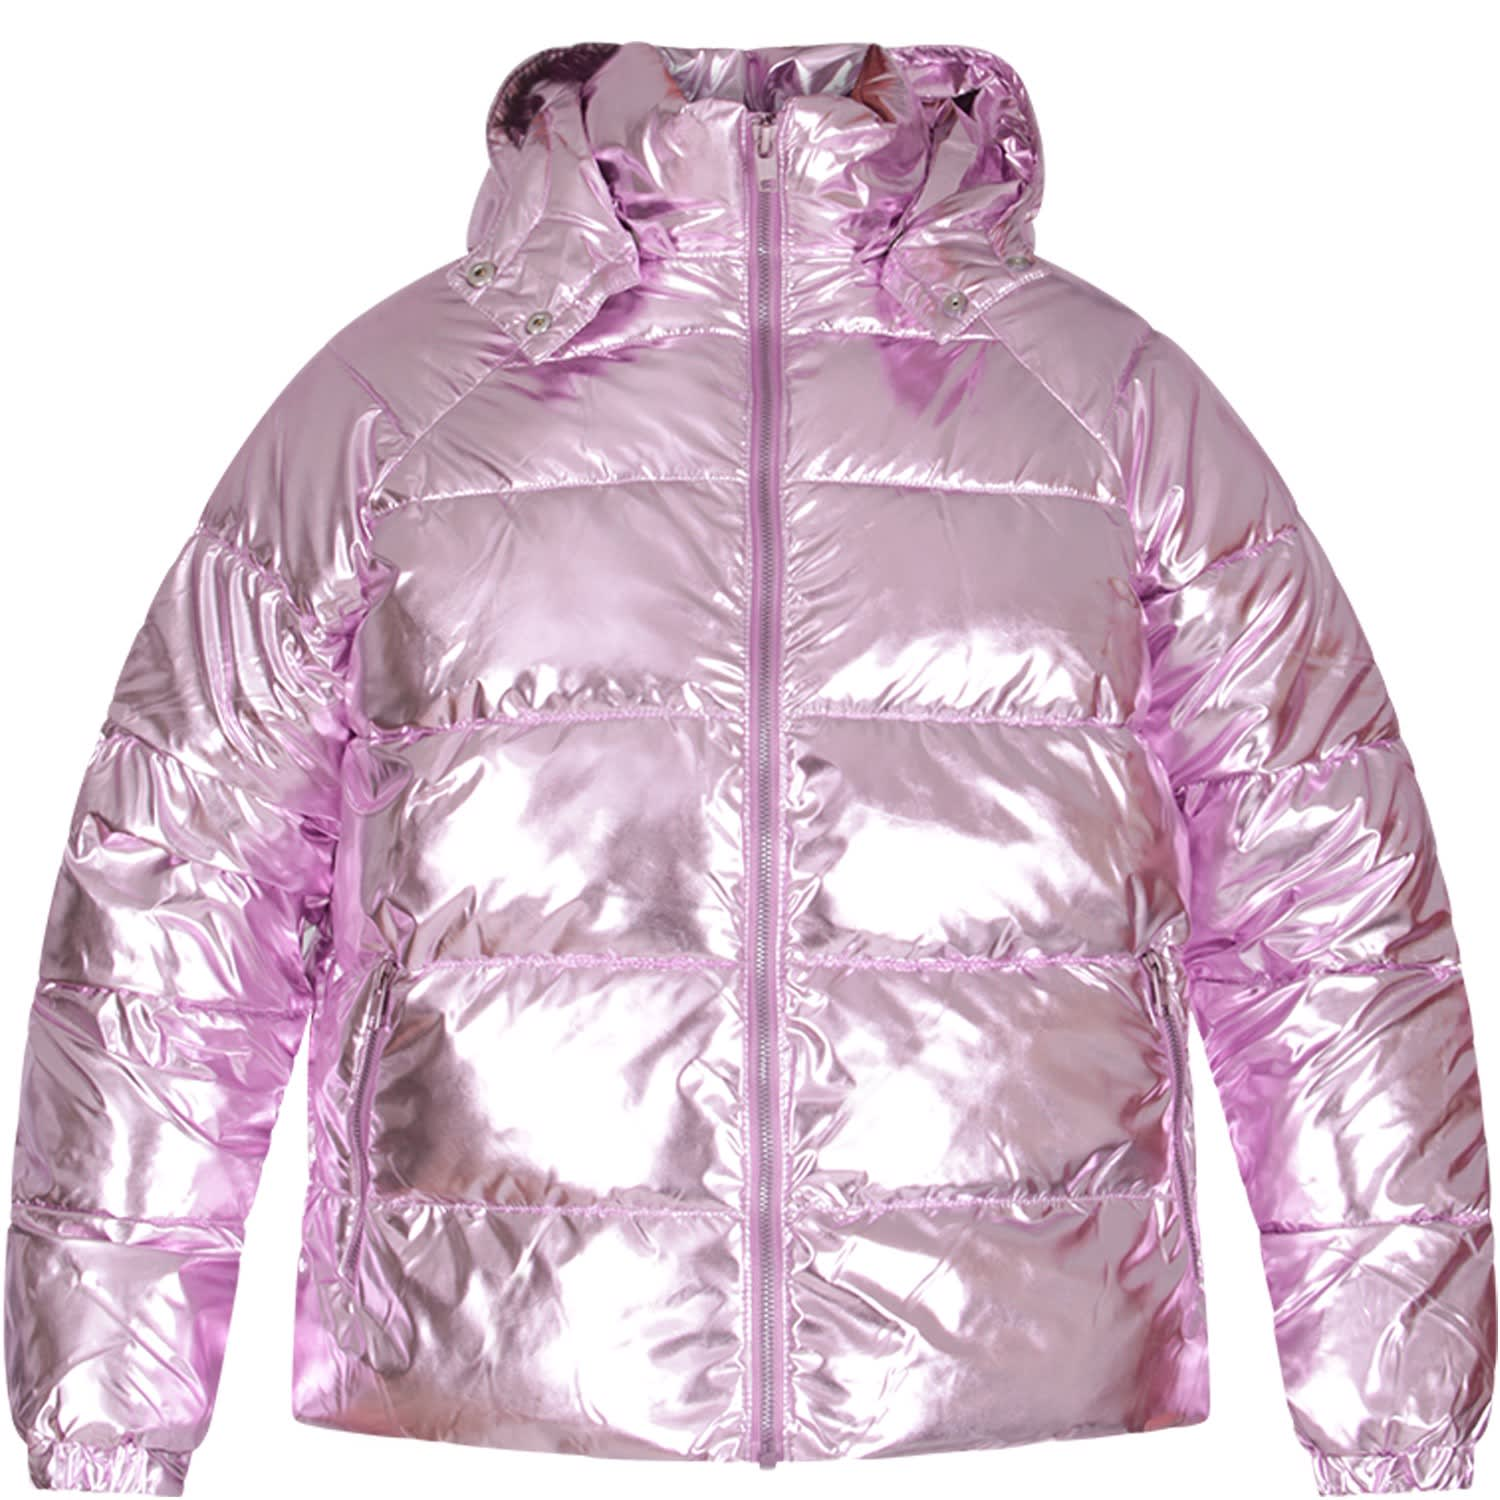 Color: Lilac Metallized lilac padding jacket with removible hood, elasticized cuffs, side zipped pockets and zip closure, on the front. 100% Recycled polyester. Machine wash at 30°C.